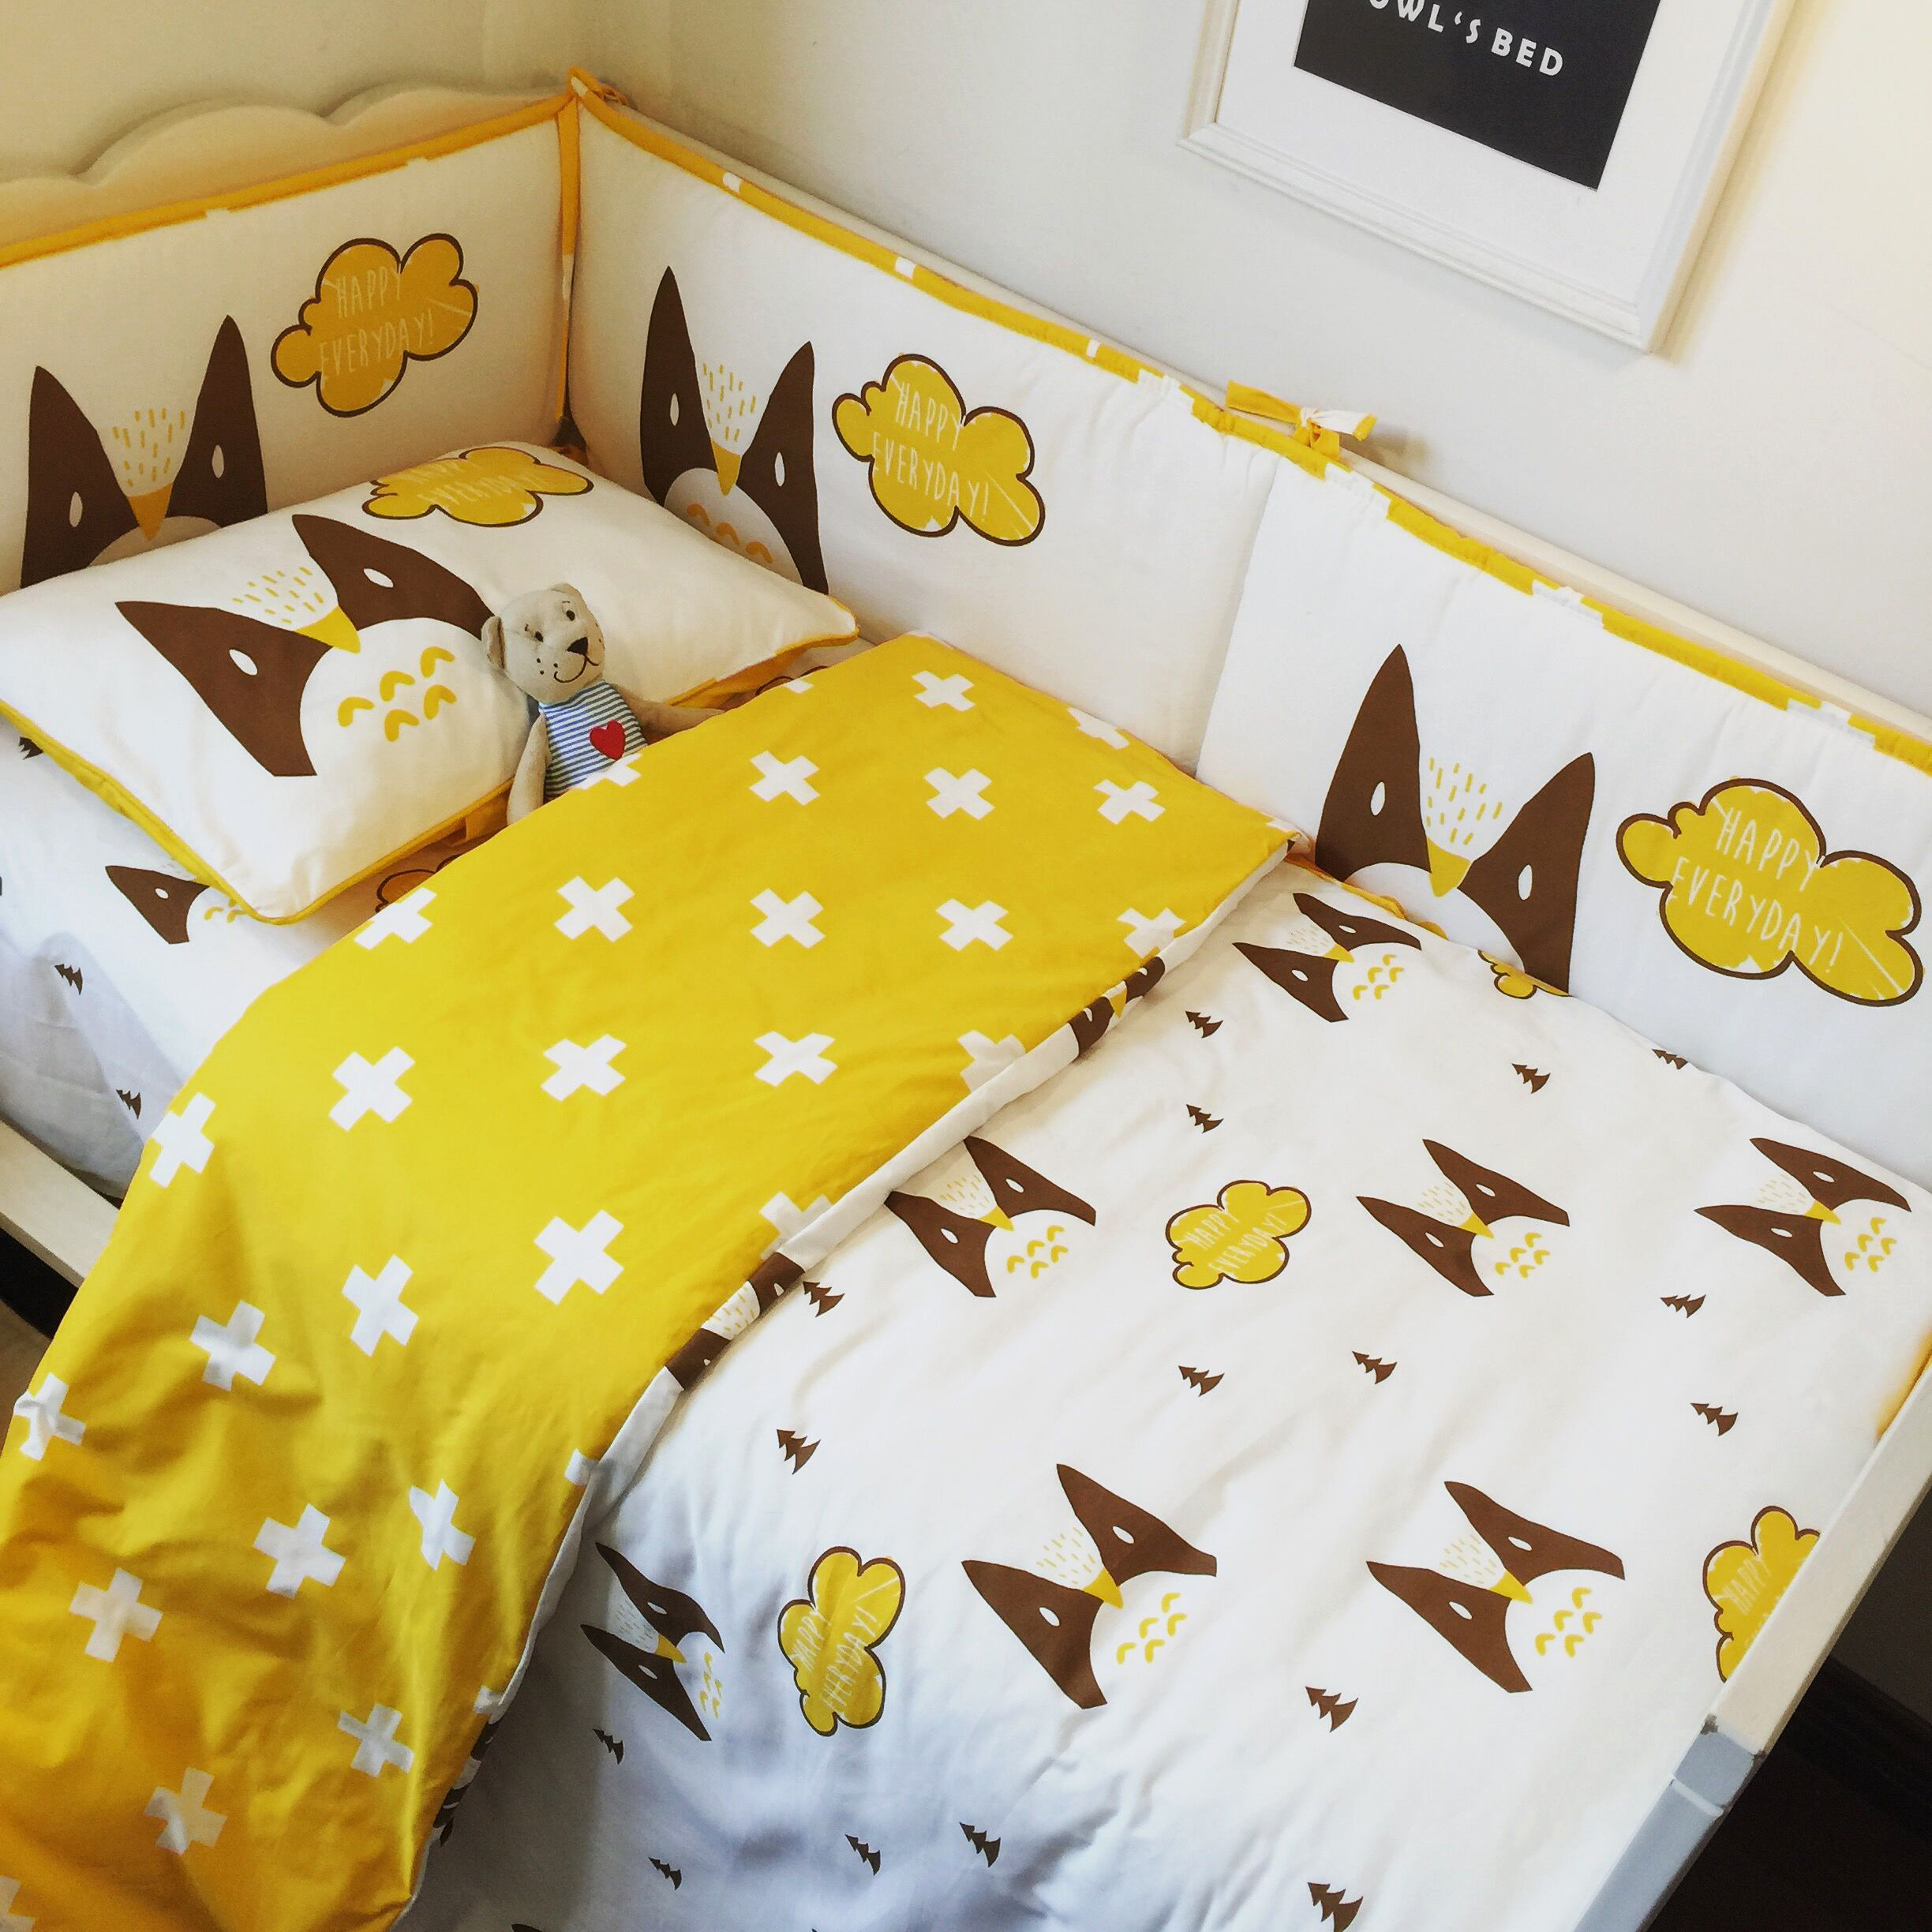 Baby bed sheet pattern - Baby Bedding Sets 3pcs Cute No Stimulation Cotton Cartoon Pattern Baby Quilt Bed Sheets Pillowcase Bedding